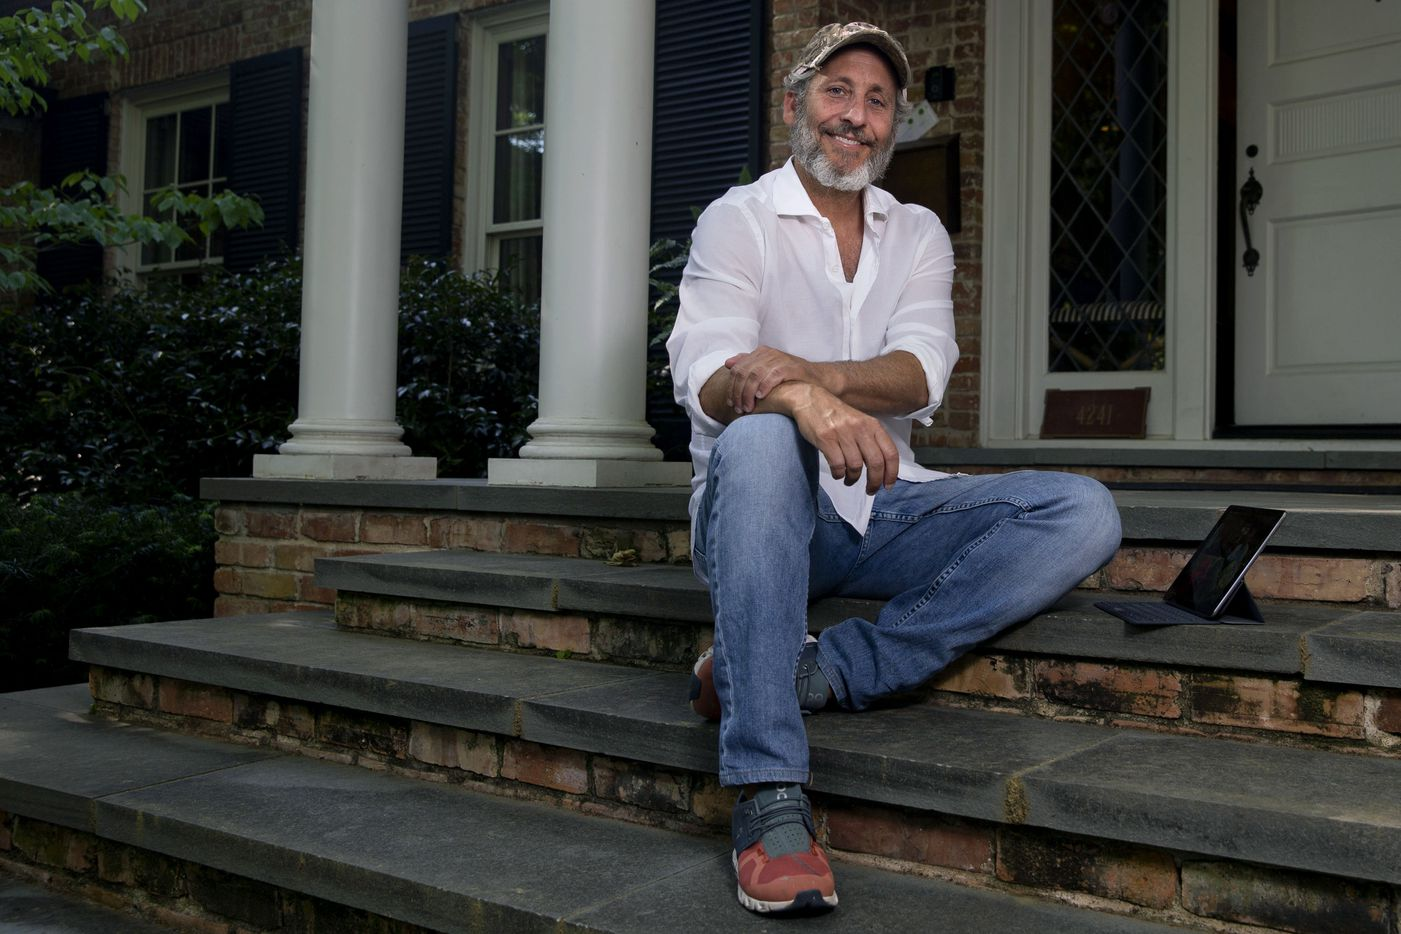 Adam Blumenfeld, CEO of Varsity Brands, poses for a portrait outside his home in Dallas on May 5. He says he's not shaving his beard until kids go back to school.